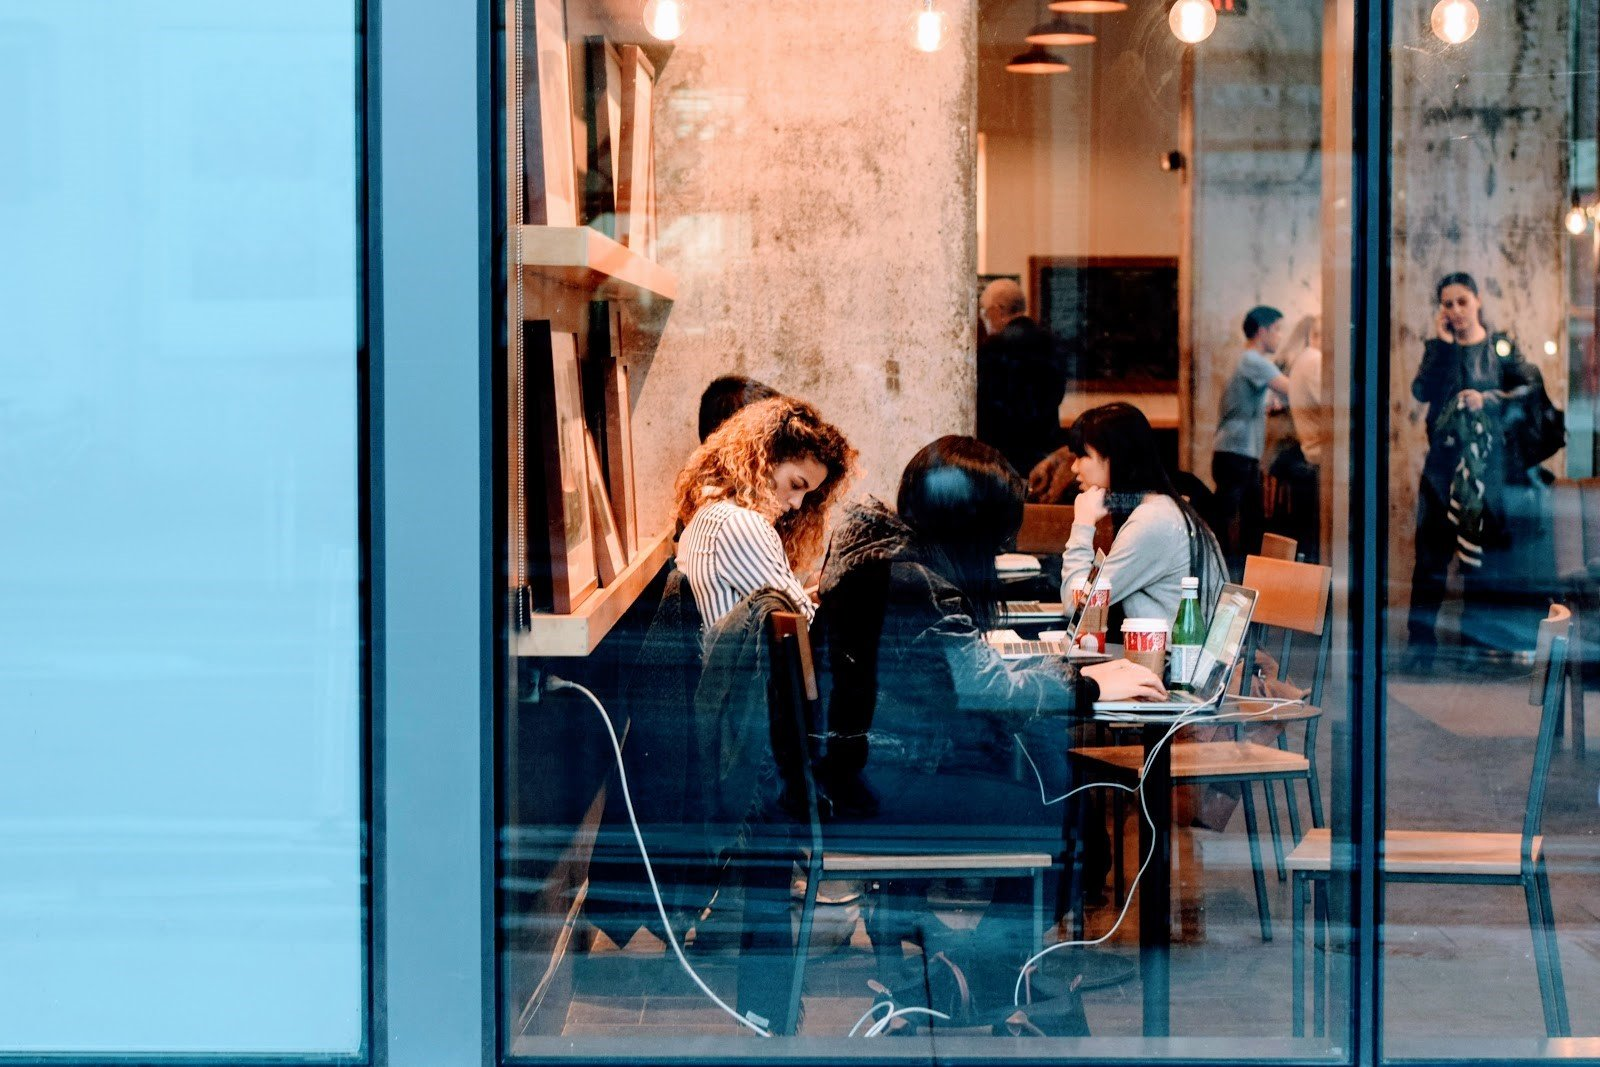 Millennials are having a greater influence on the workplace and workspace